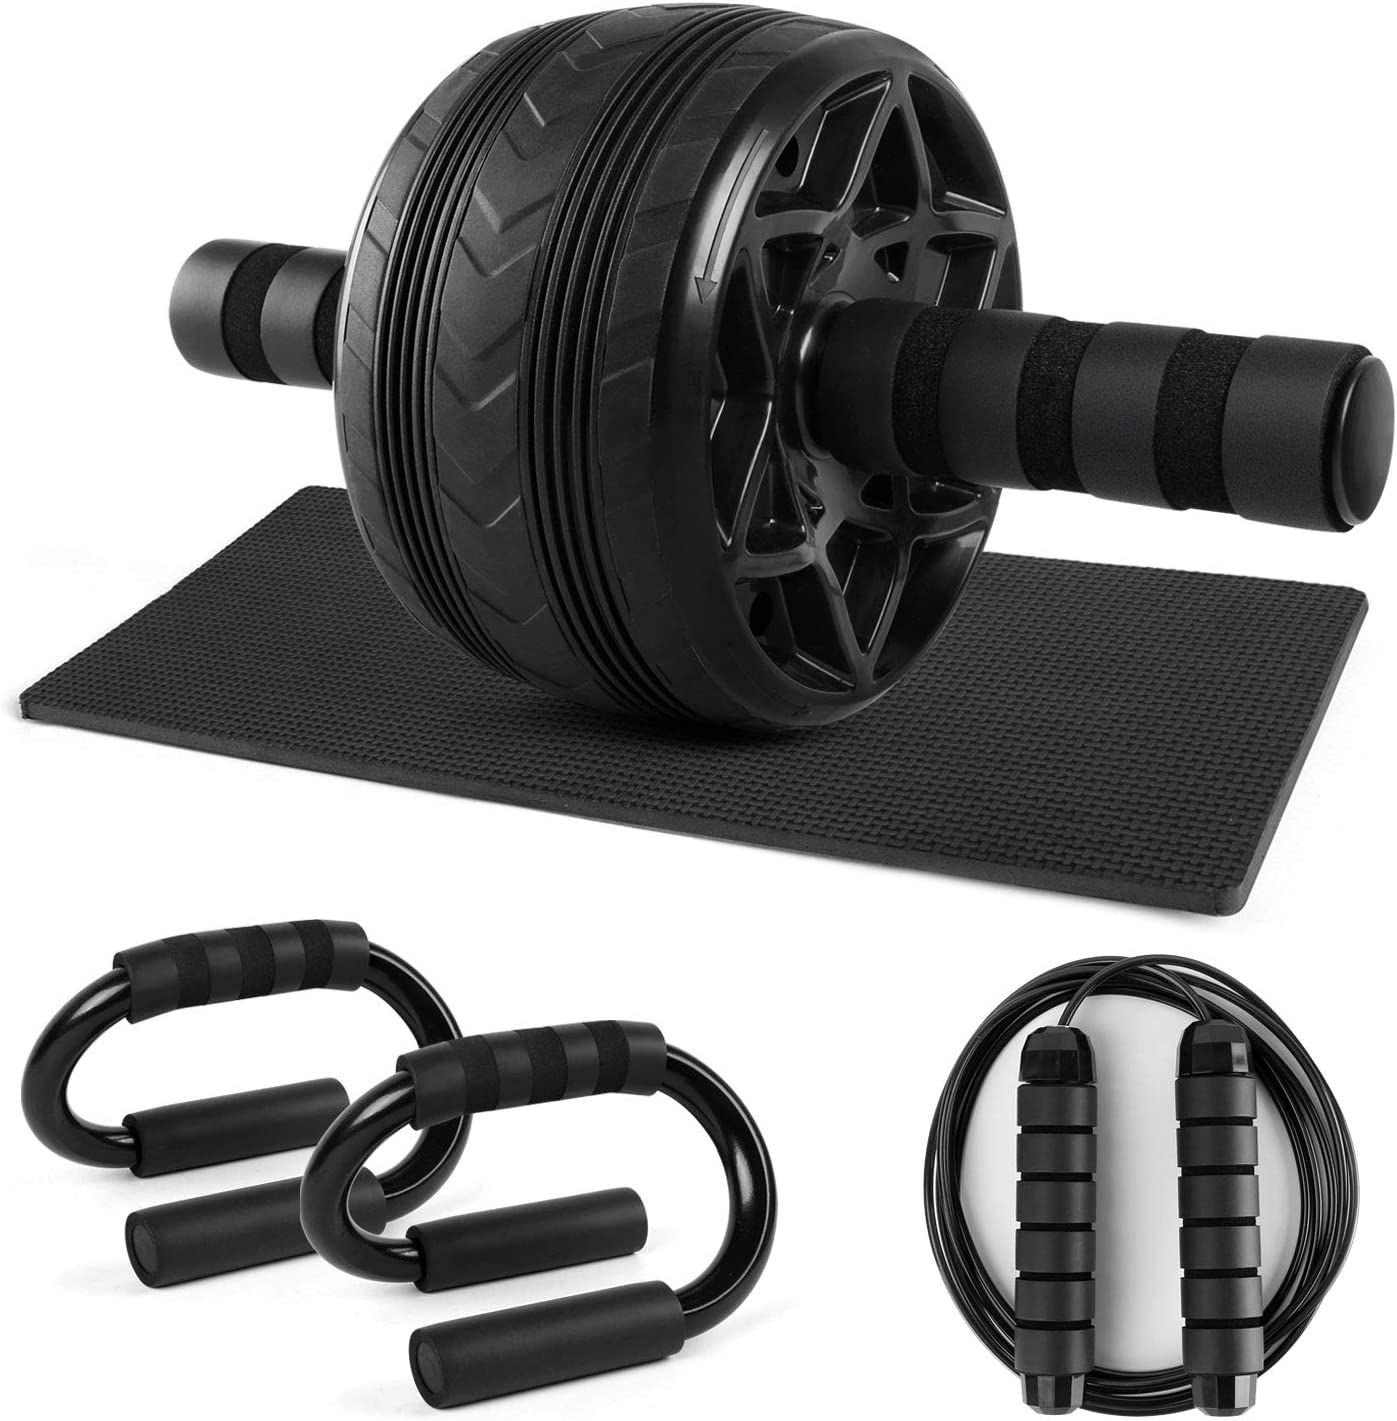 Core Workout Equipment for Home Gym Strength Training and Abdominal Exercise Durable Jump Rope Odoland 4-in-1 Large Size Ab Roller Wheel Set with S Shaped Push Up Bars Non Slip Knee Pad